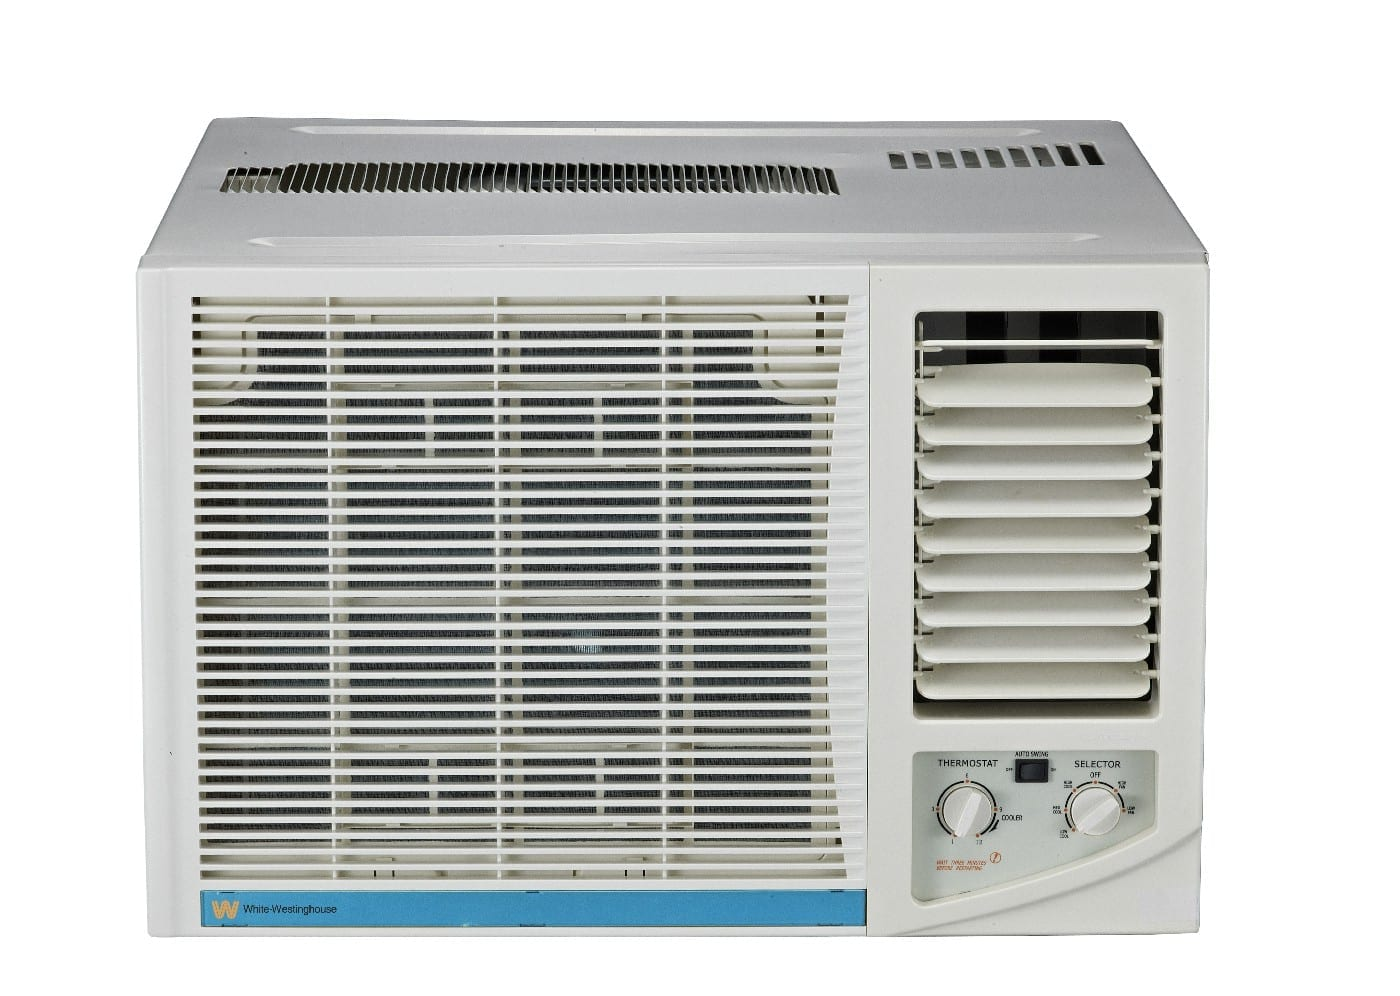 Ww House Window A/C, Capacity: ( 1.5Ton)18479 Btu,  R410 Refrigerant, 220-240V/50Hz Warranty Is 2Years Full Unit And 7 Years On Sealed System